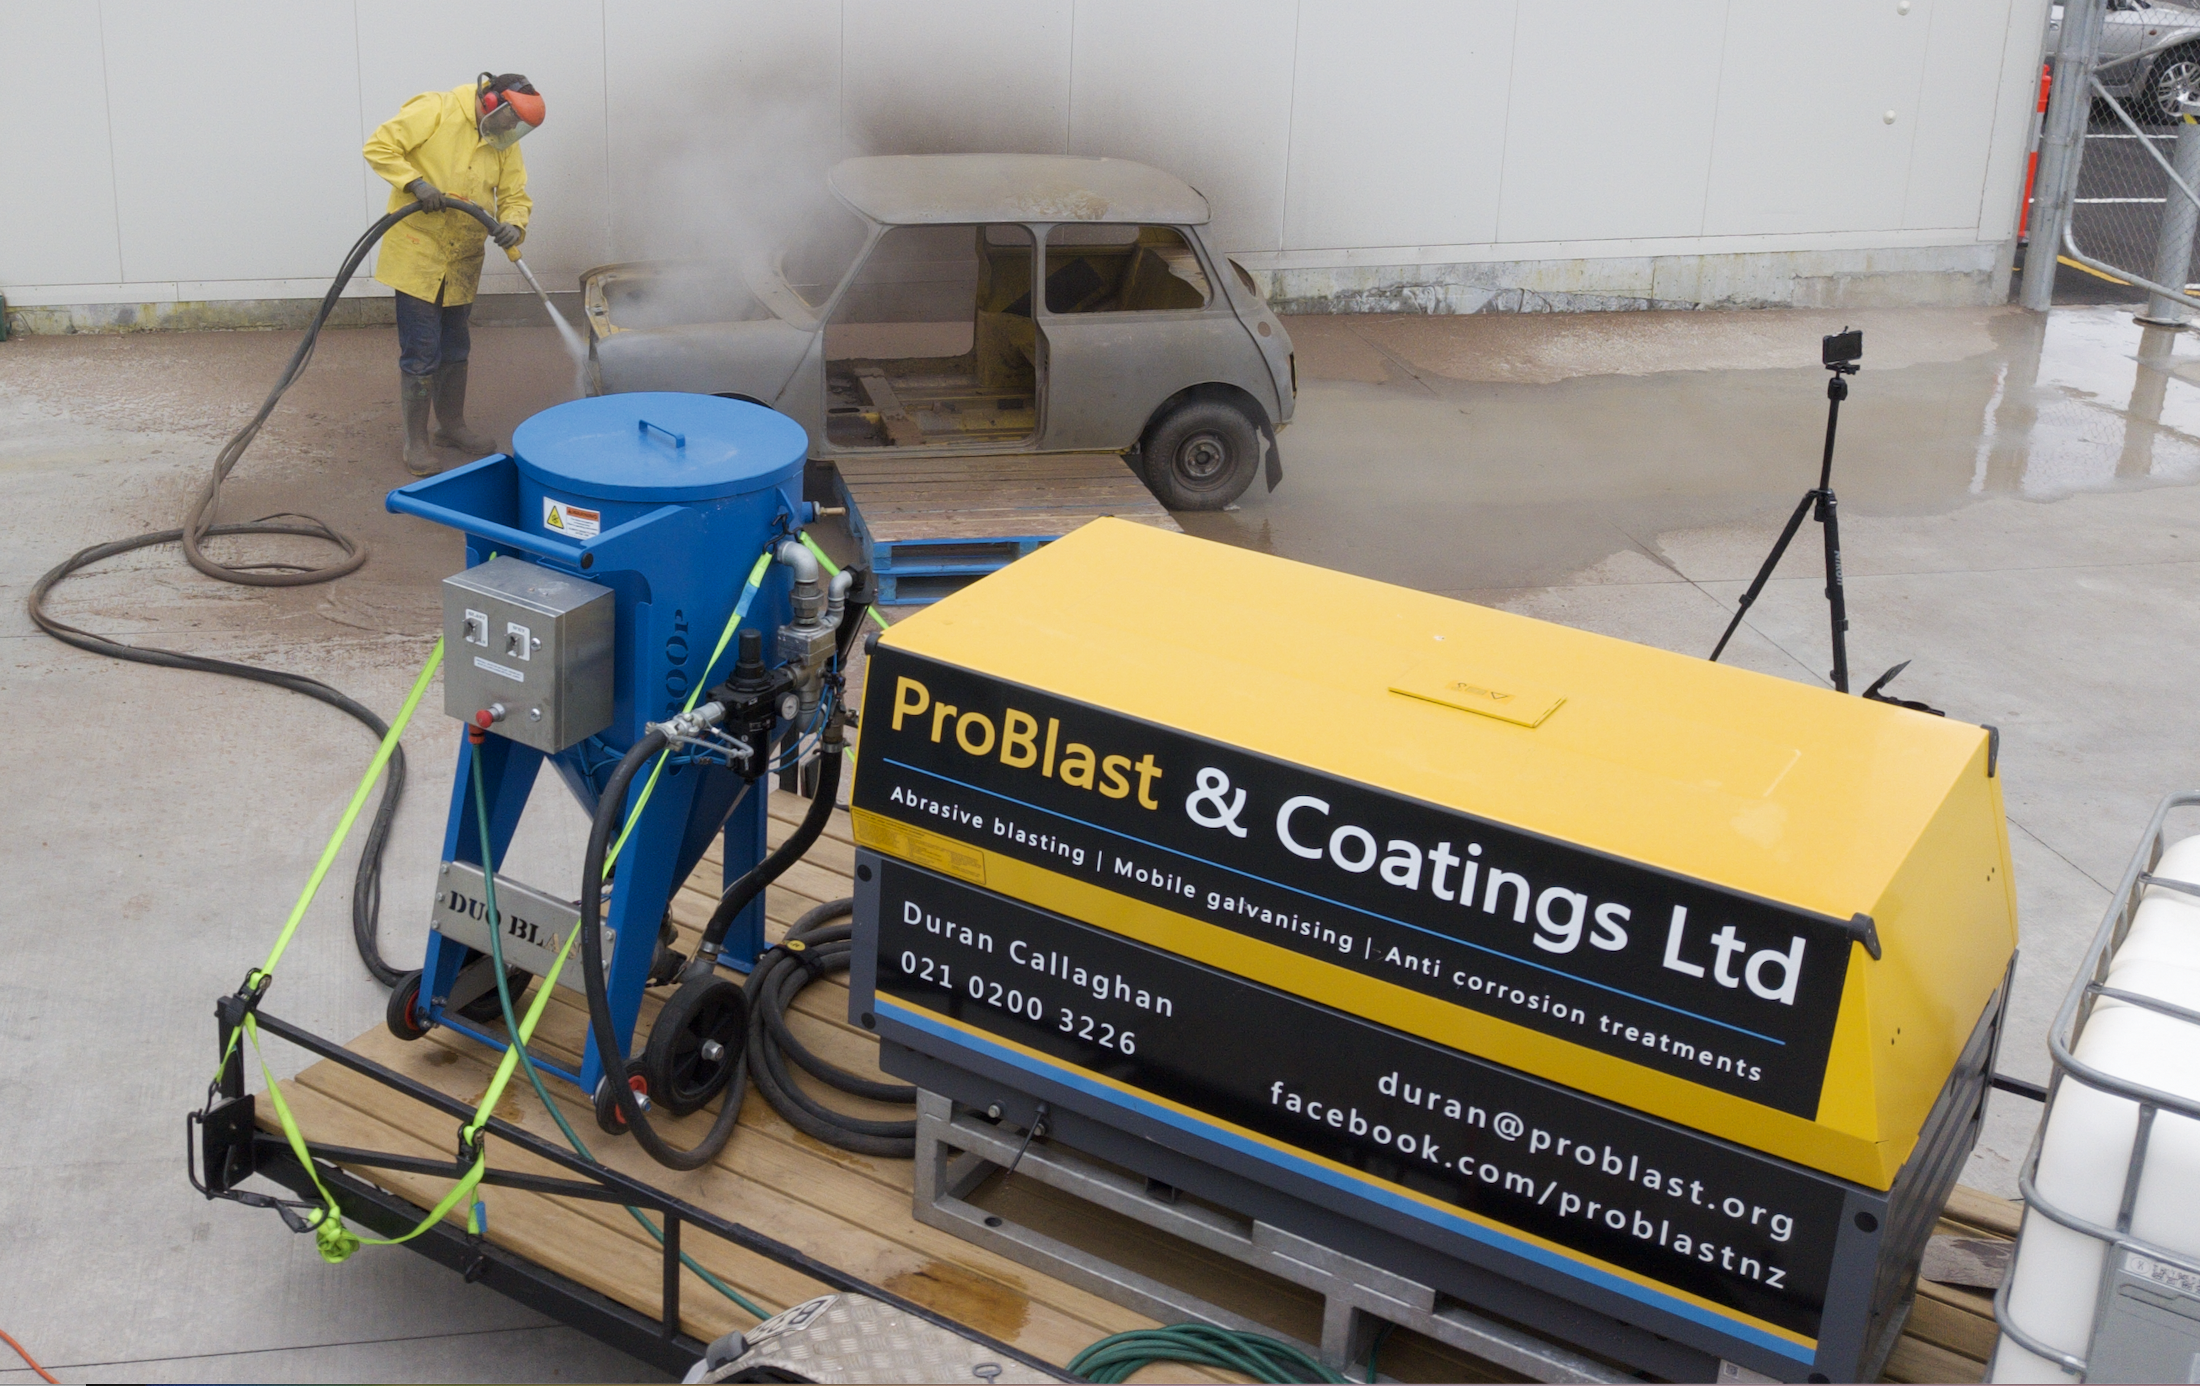 Problast Coatings Anti Corrosion Treatments